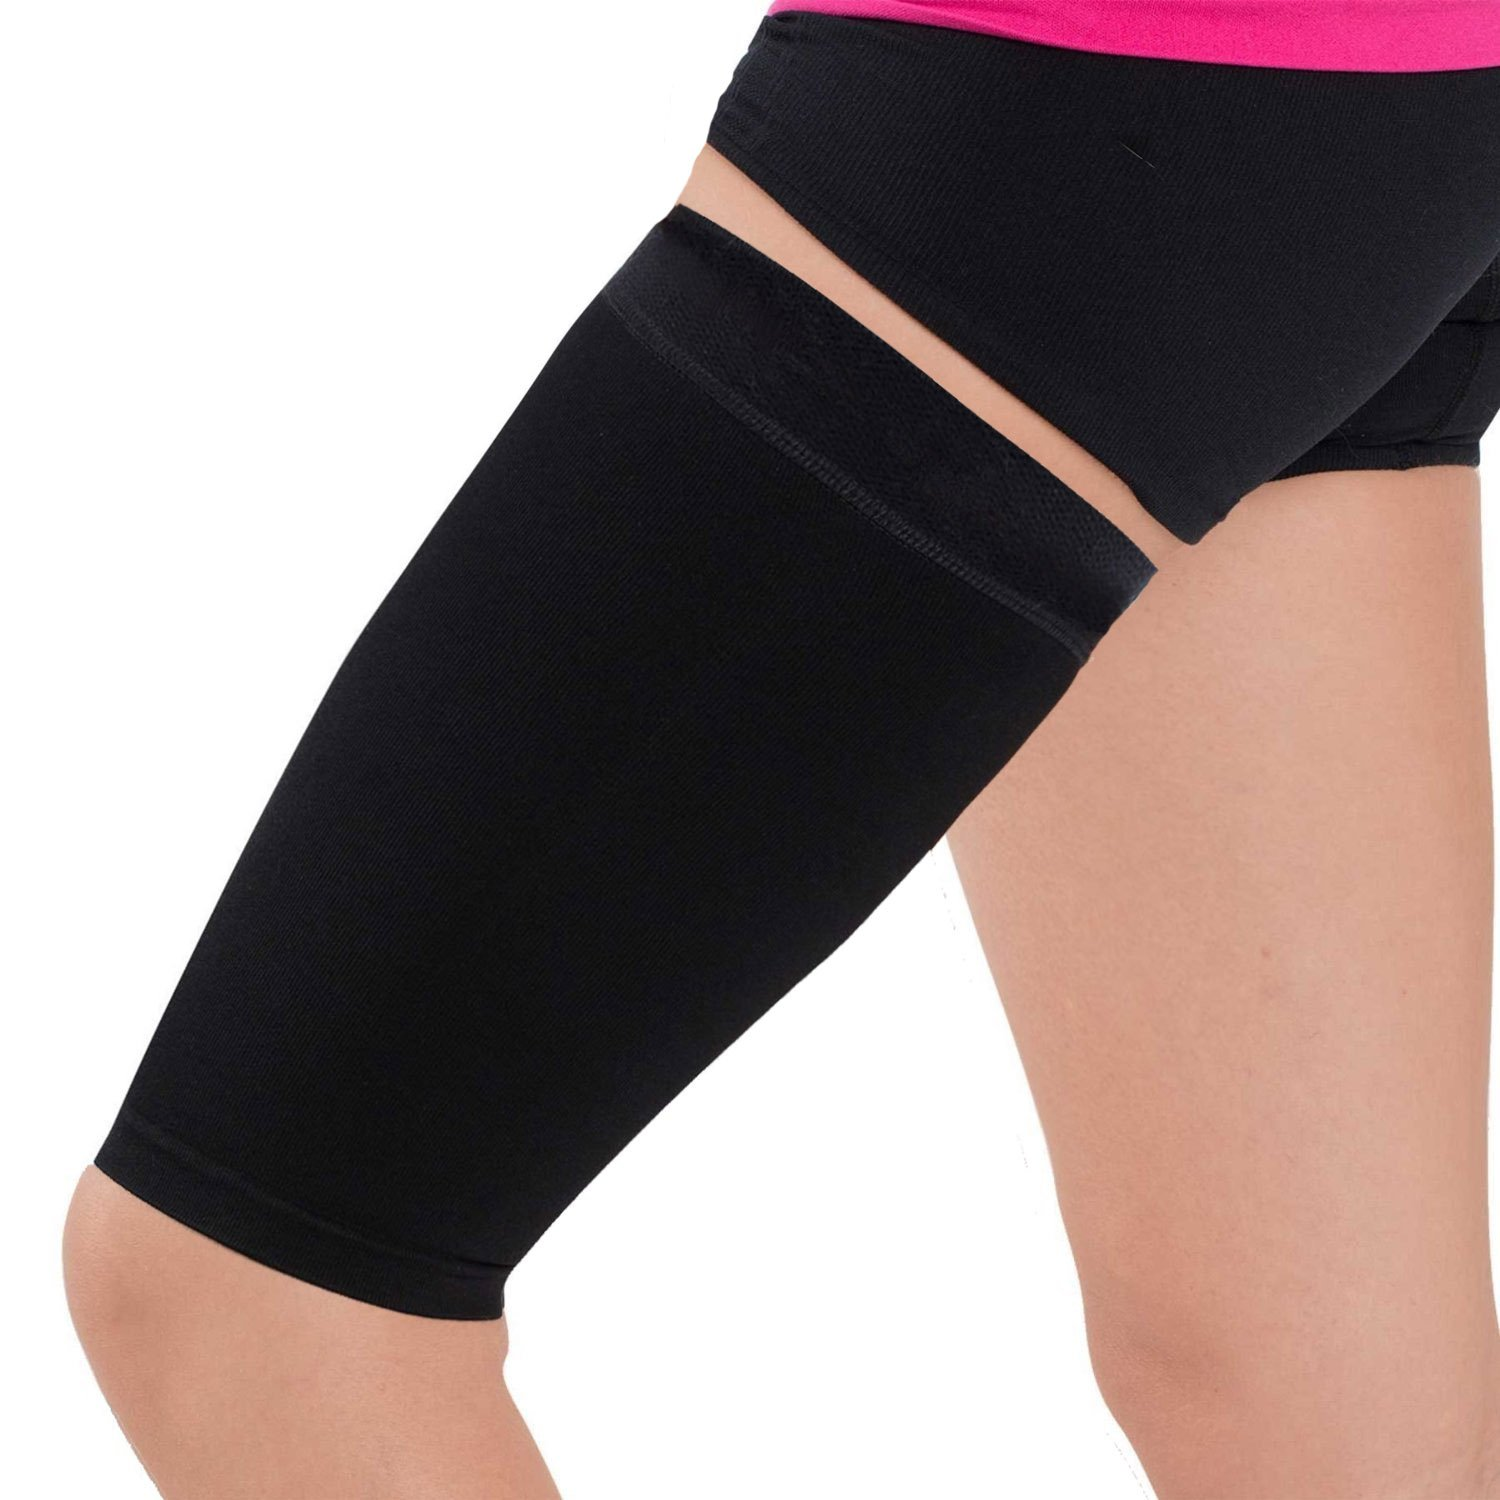 Thigh Compression Sleeve - Hamstring, Quadriceps, Groin Pull and Strains - Running, Basketball, Tennis, Soccer, Sports - Athletic Thigh Support (Single) (Black, M) by Pure Compression